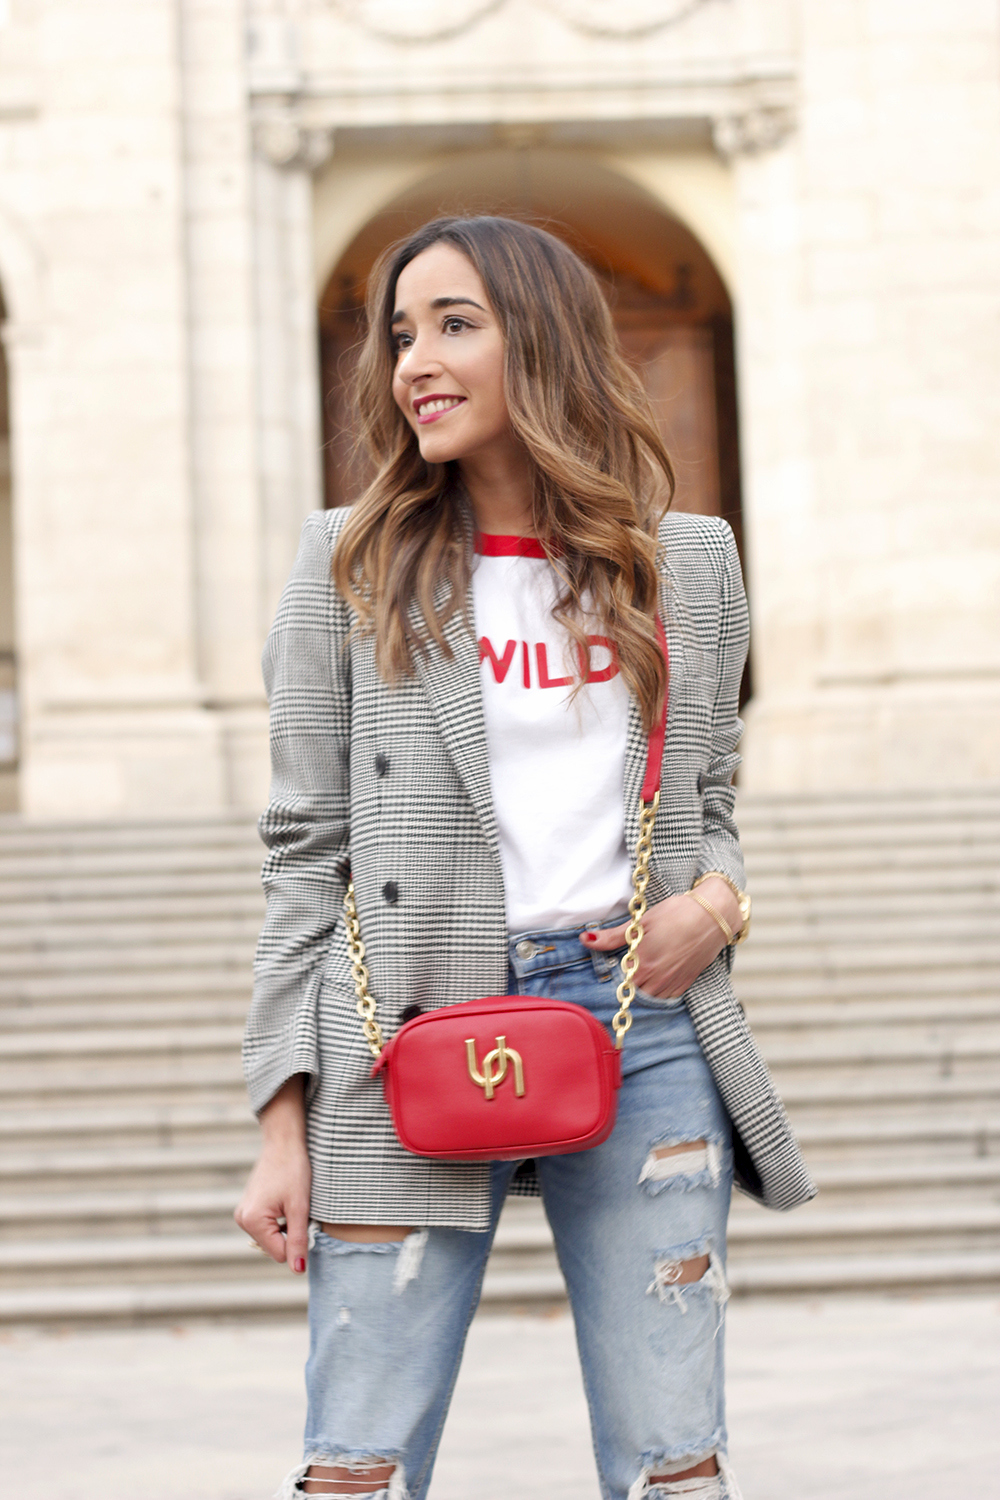 Prince of wales print blazer ripped jeans red heels uterqüe style trend fall outfit05